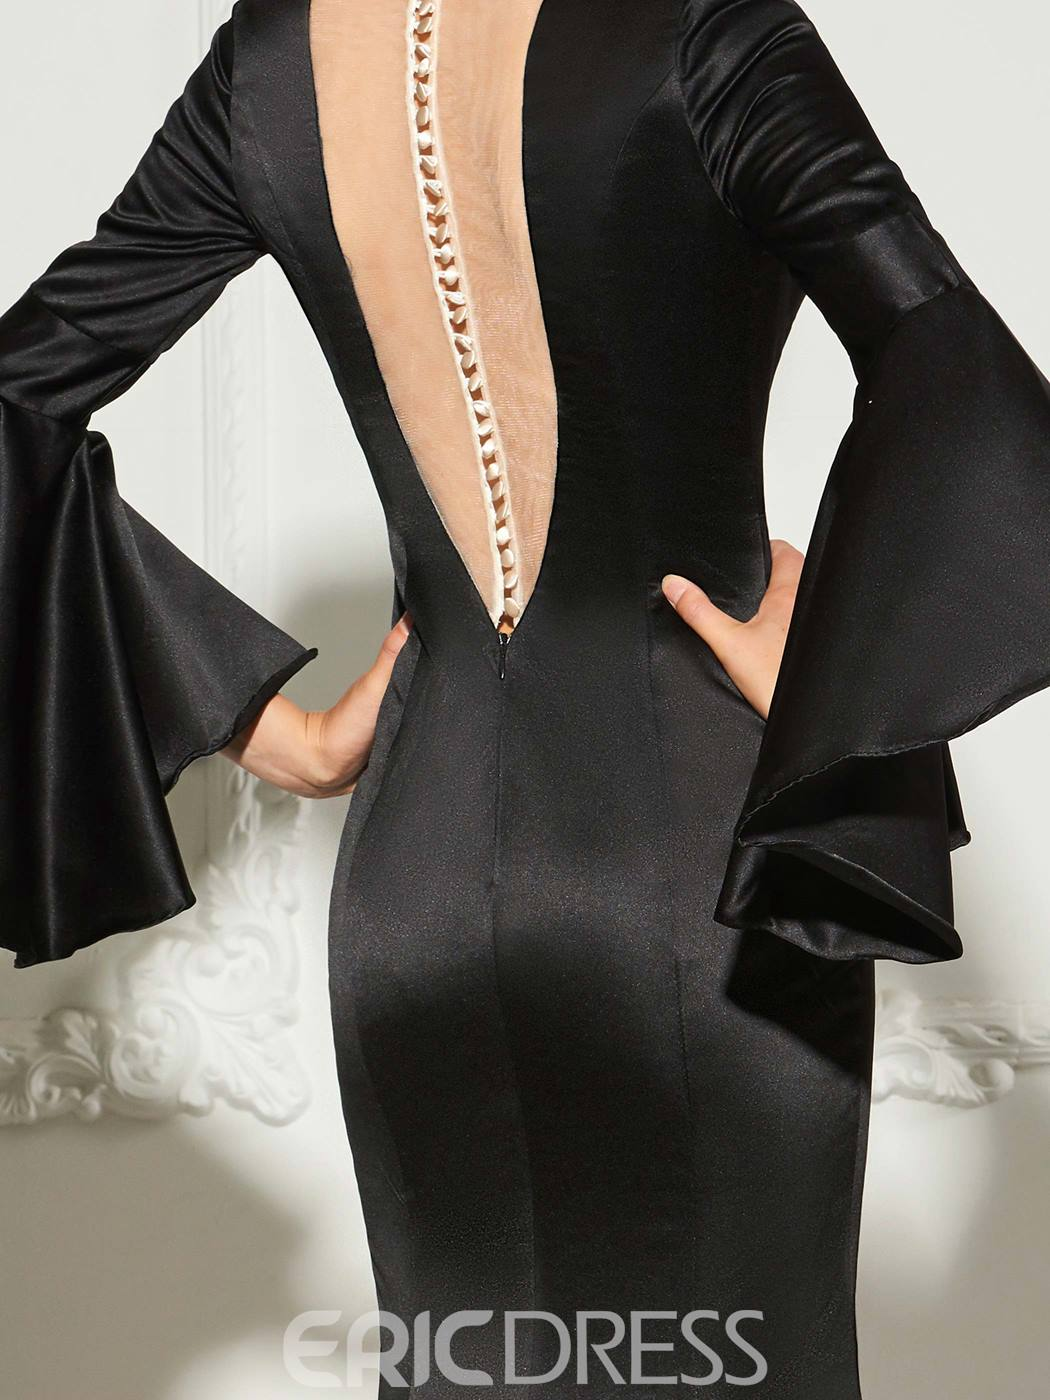 Ericdress Long Sleeve V Neck Mermaid Evening Dress With Side Slit